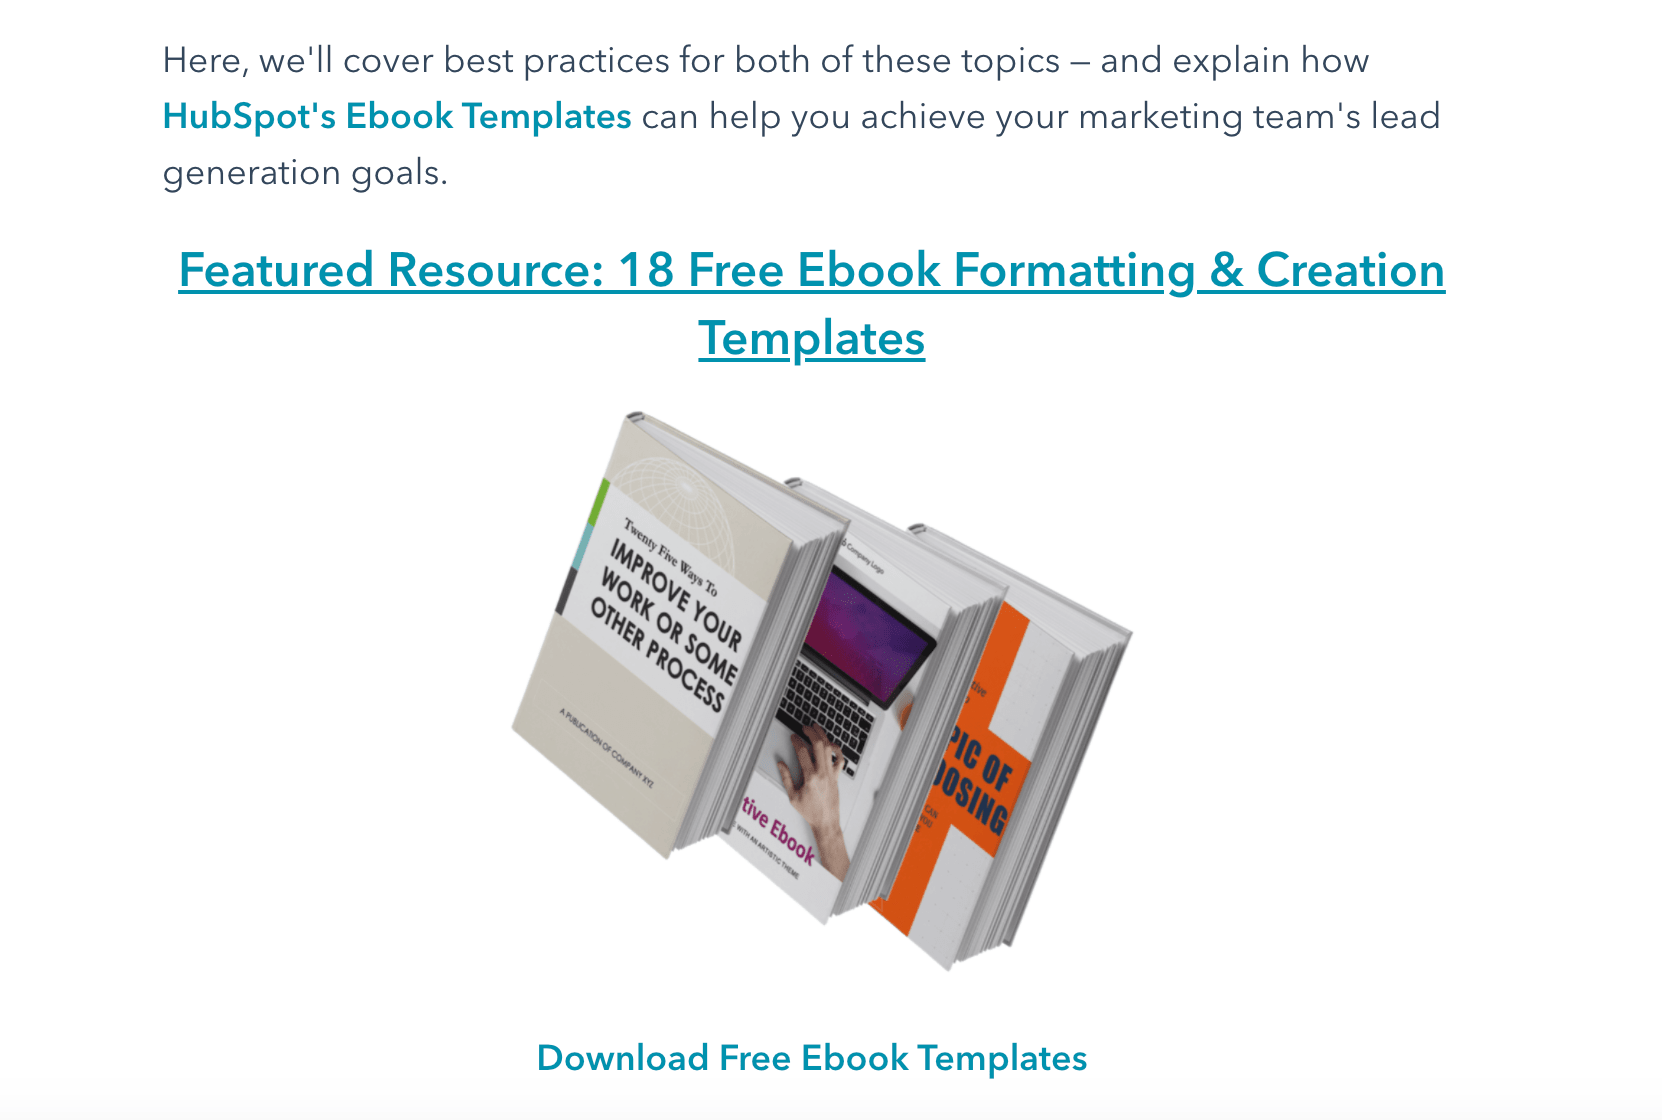 HubSpot's featured resource on ebook formatting templates